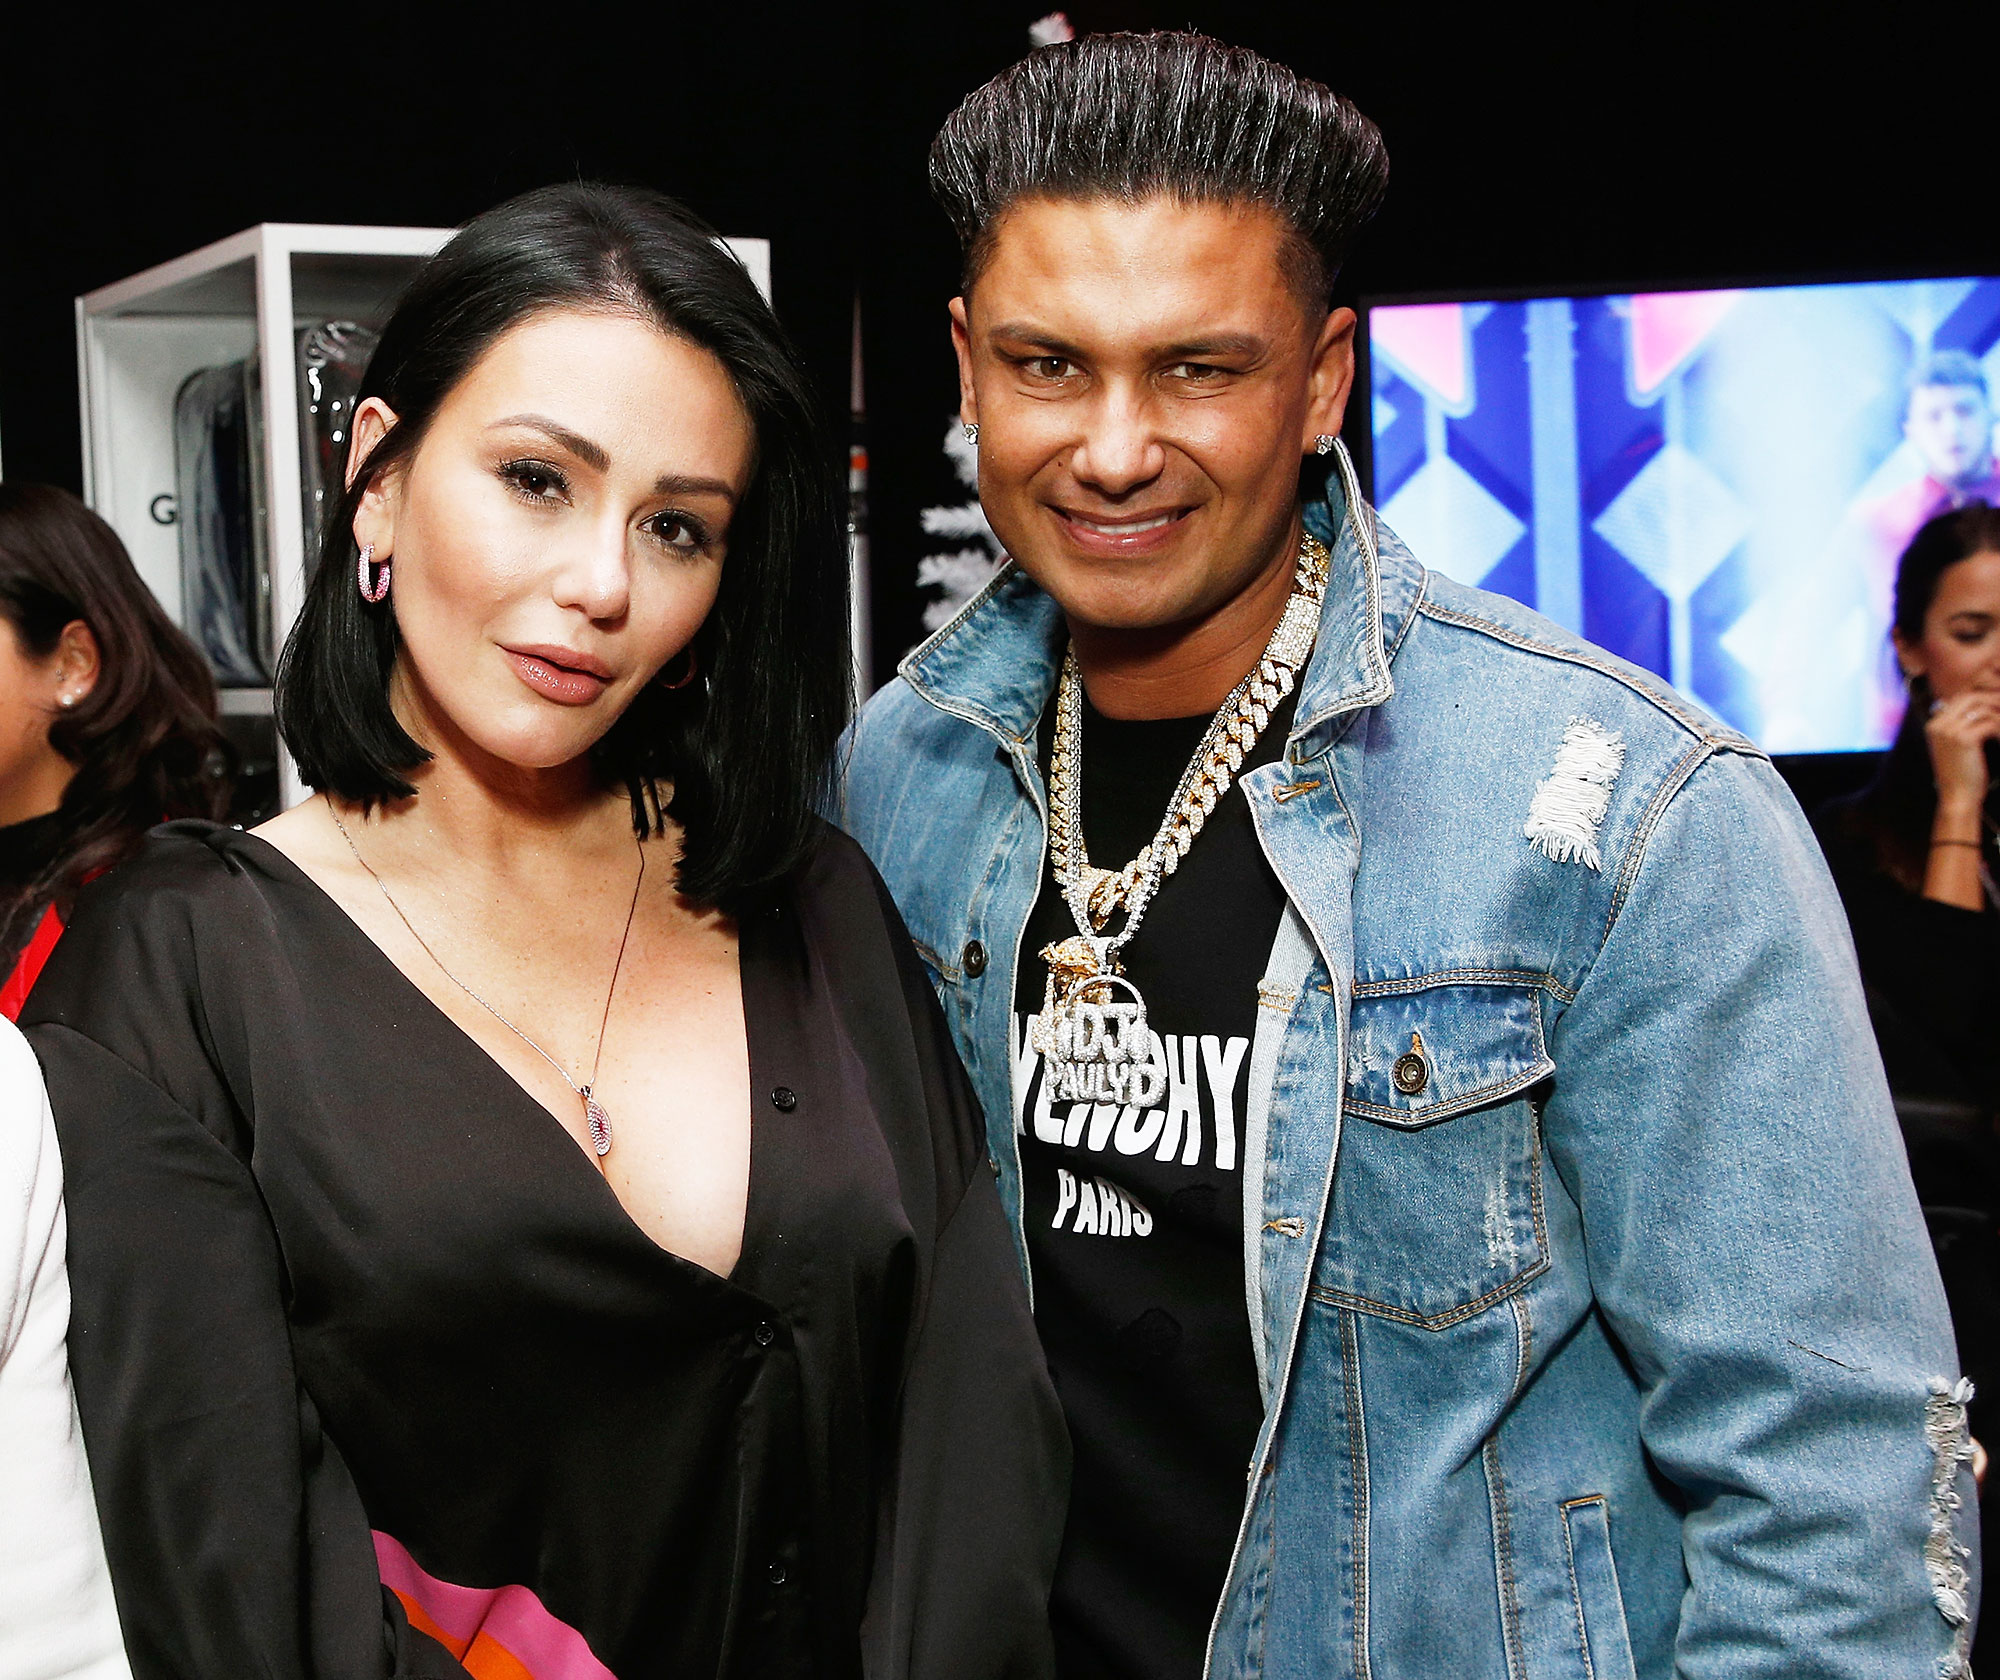 JWoww Pauly D Excited New Boyfriend Roger Mathews Divorce - Jenni 'JWoww' Farley and Pauly D attend Z100's Jingle Ball Gift Lounge at Madison Square Garden on December 7, 2018 in New York City.